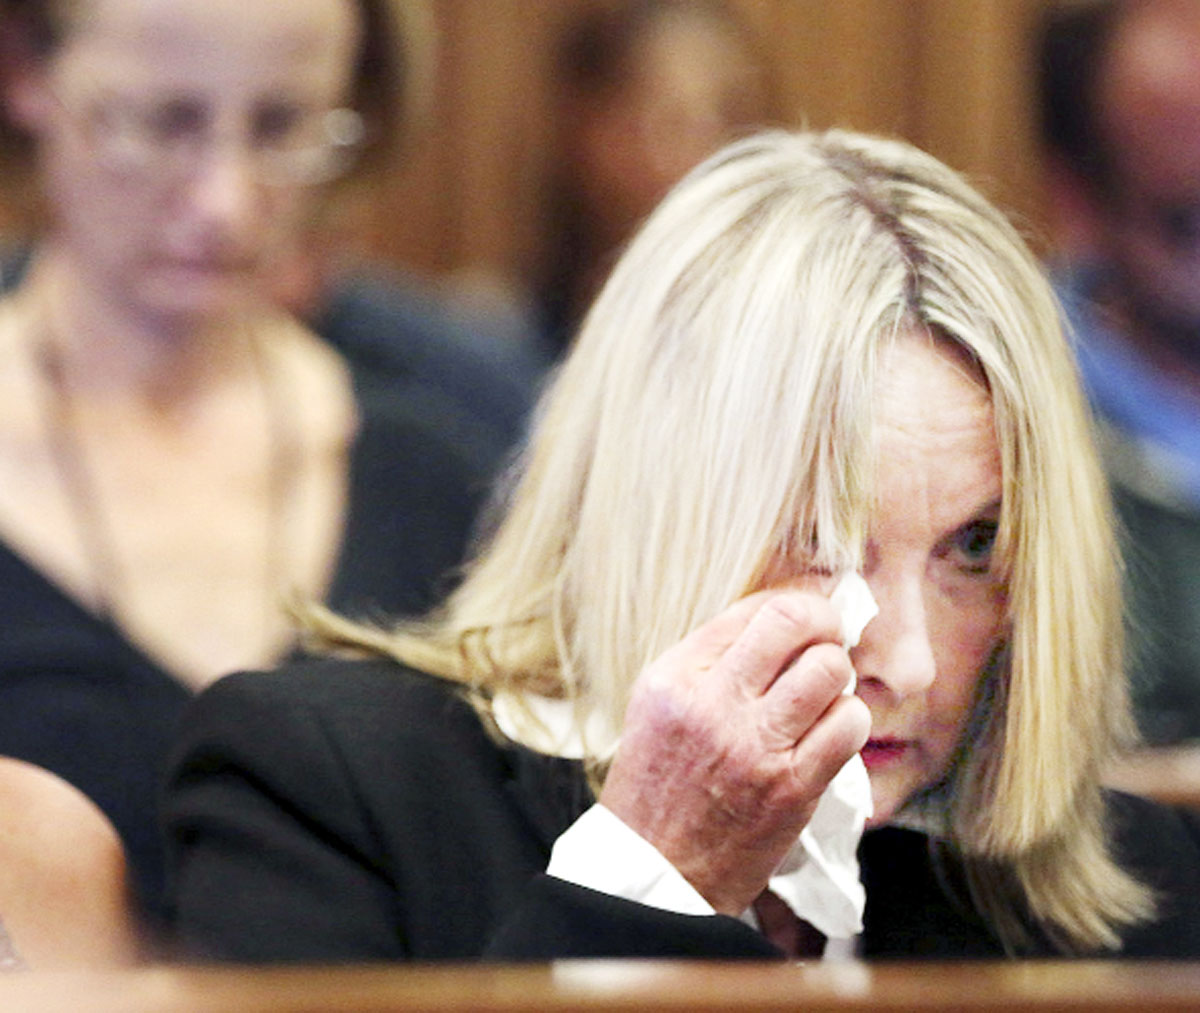 Reeva Steenkamp's East Lancs mother 'obsessed with staring at Pistorius'